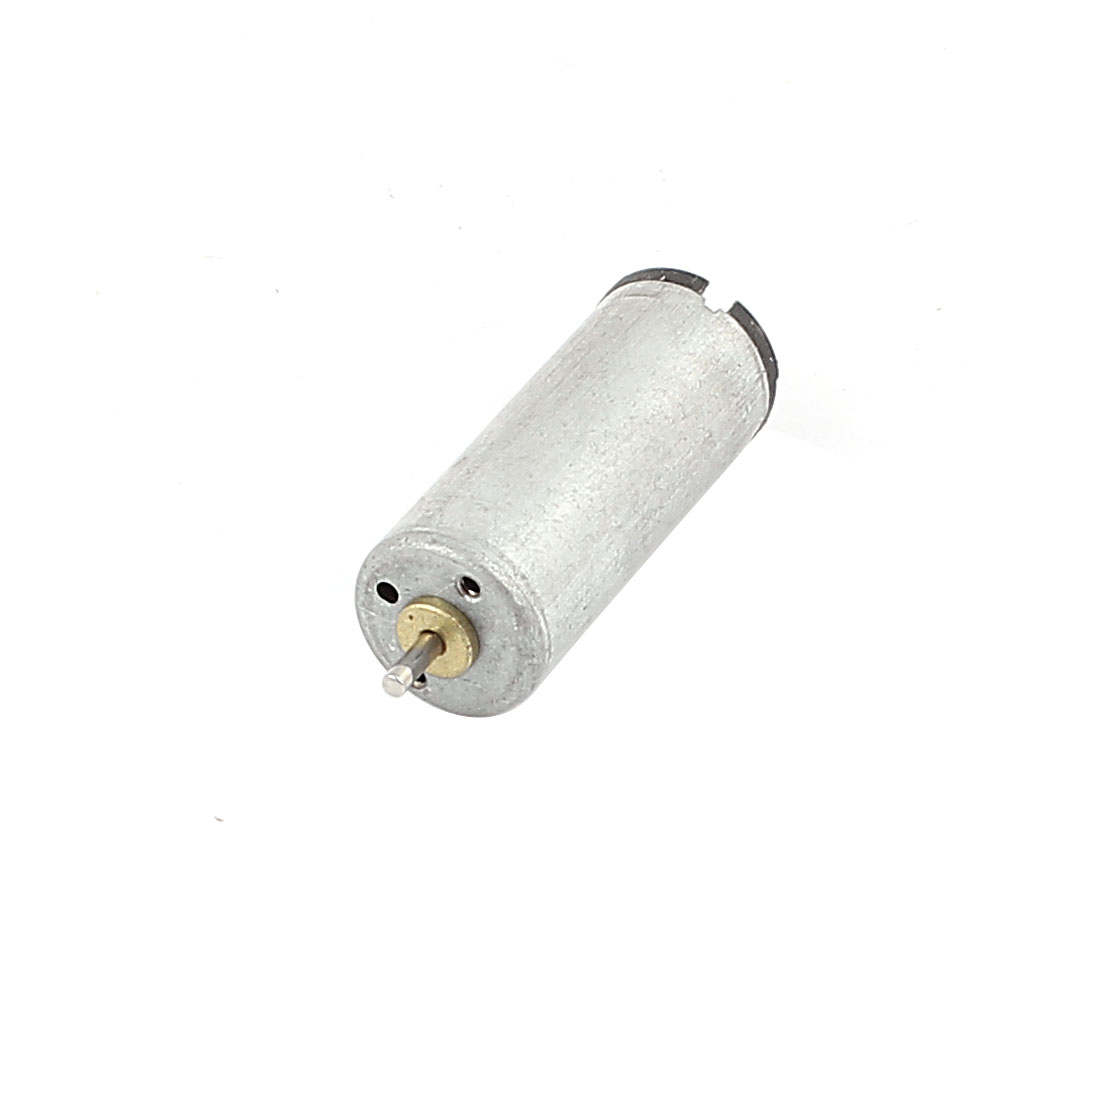 DC 3-6V 20000RPM Electrical Mini Motor 12x30mm for RC Model Toys DIY